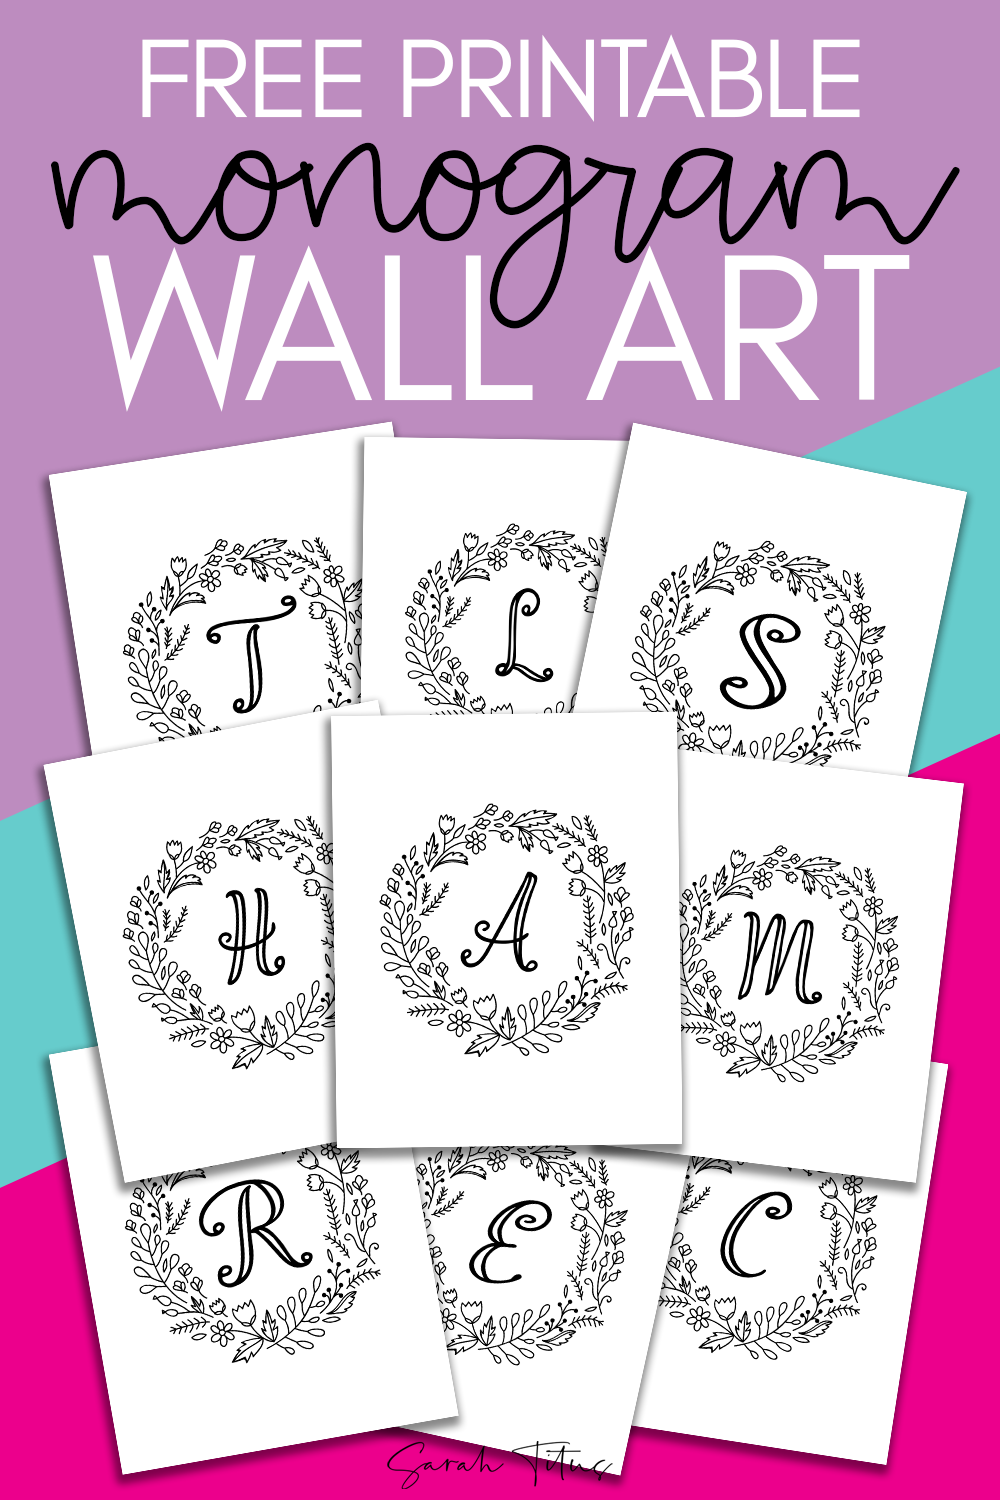 graphic regarding Free Monogram Printable named Absolutely free Printable Monogram Wall Artwork - Colorable! - Sarah Titus